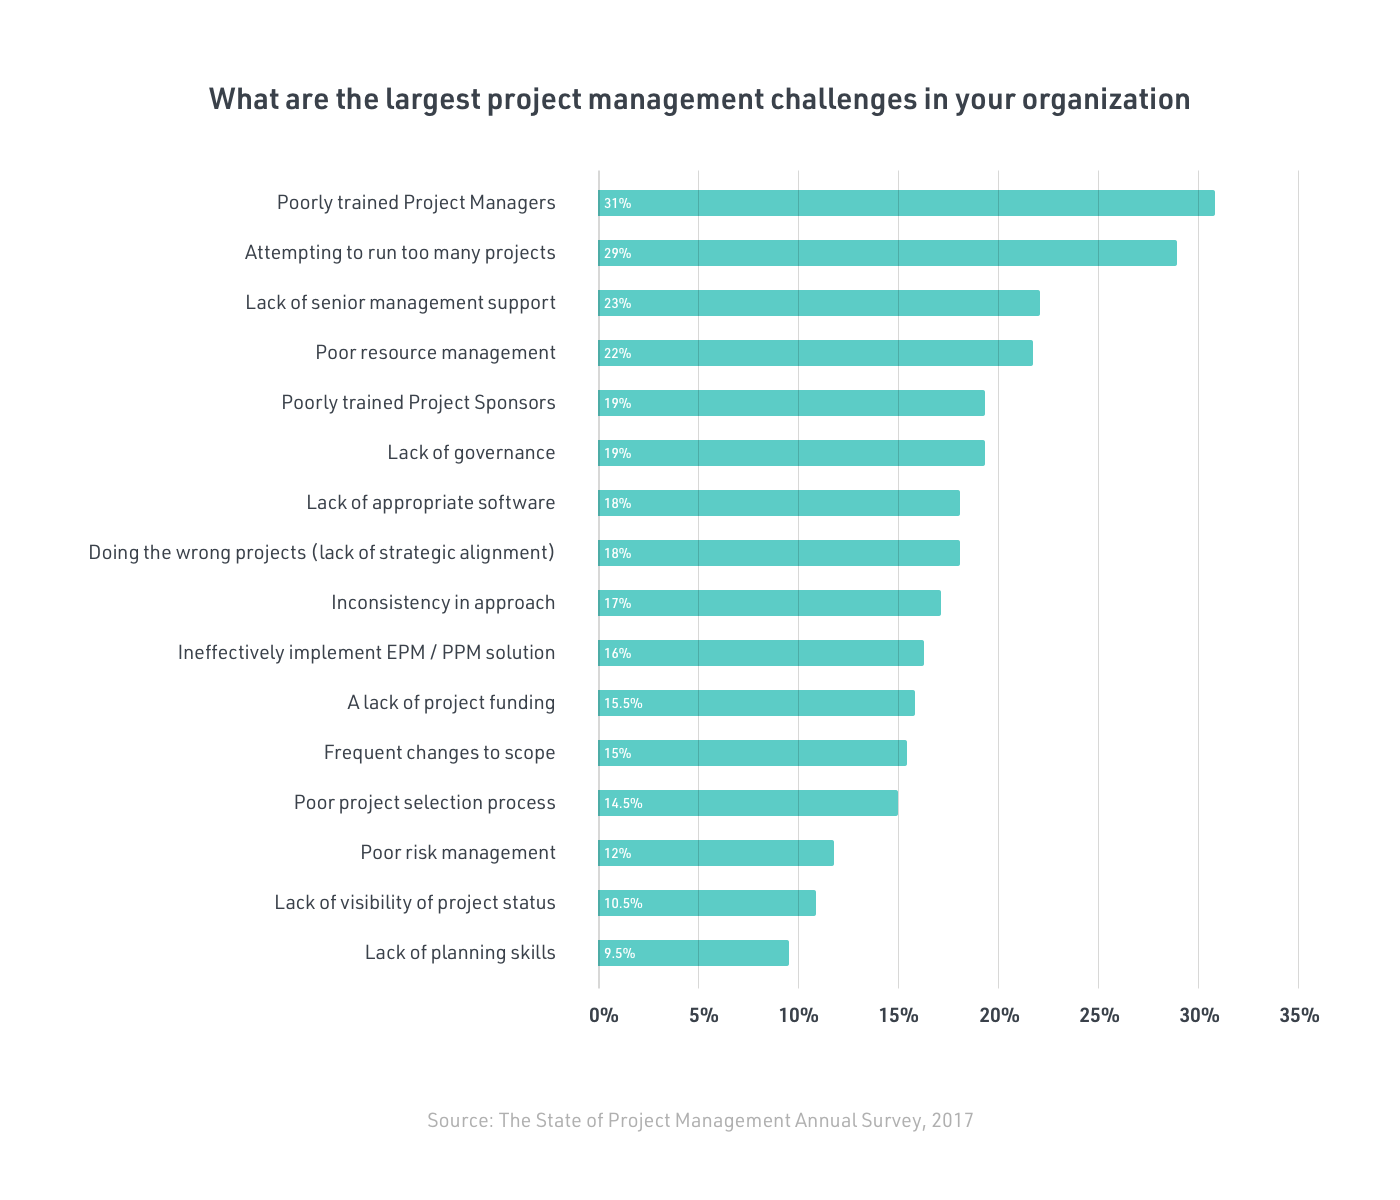 Too many projects at once is one of the biggest challenges in project management - Wellingtone report image